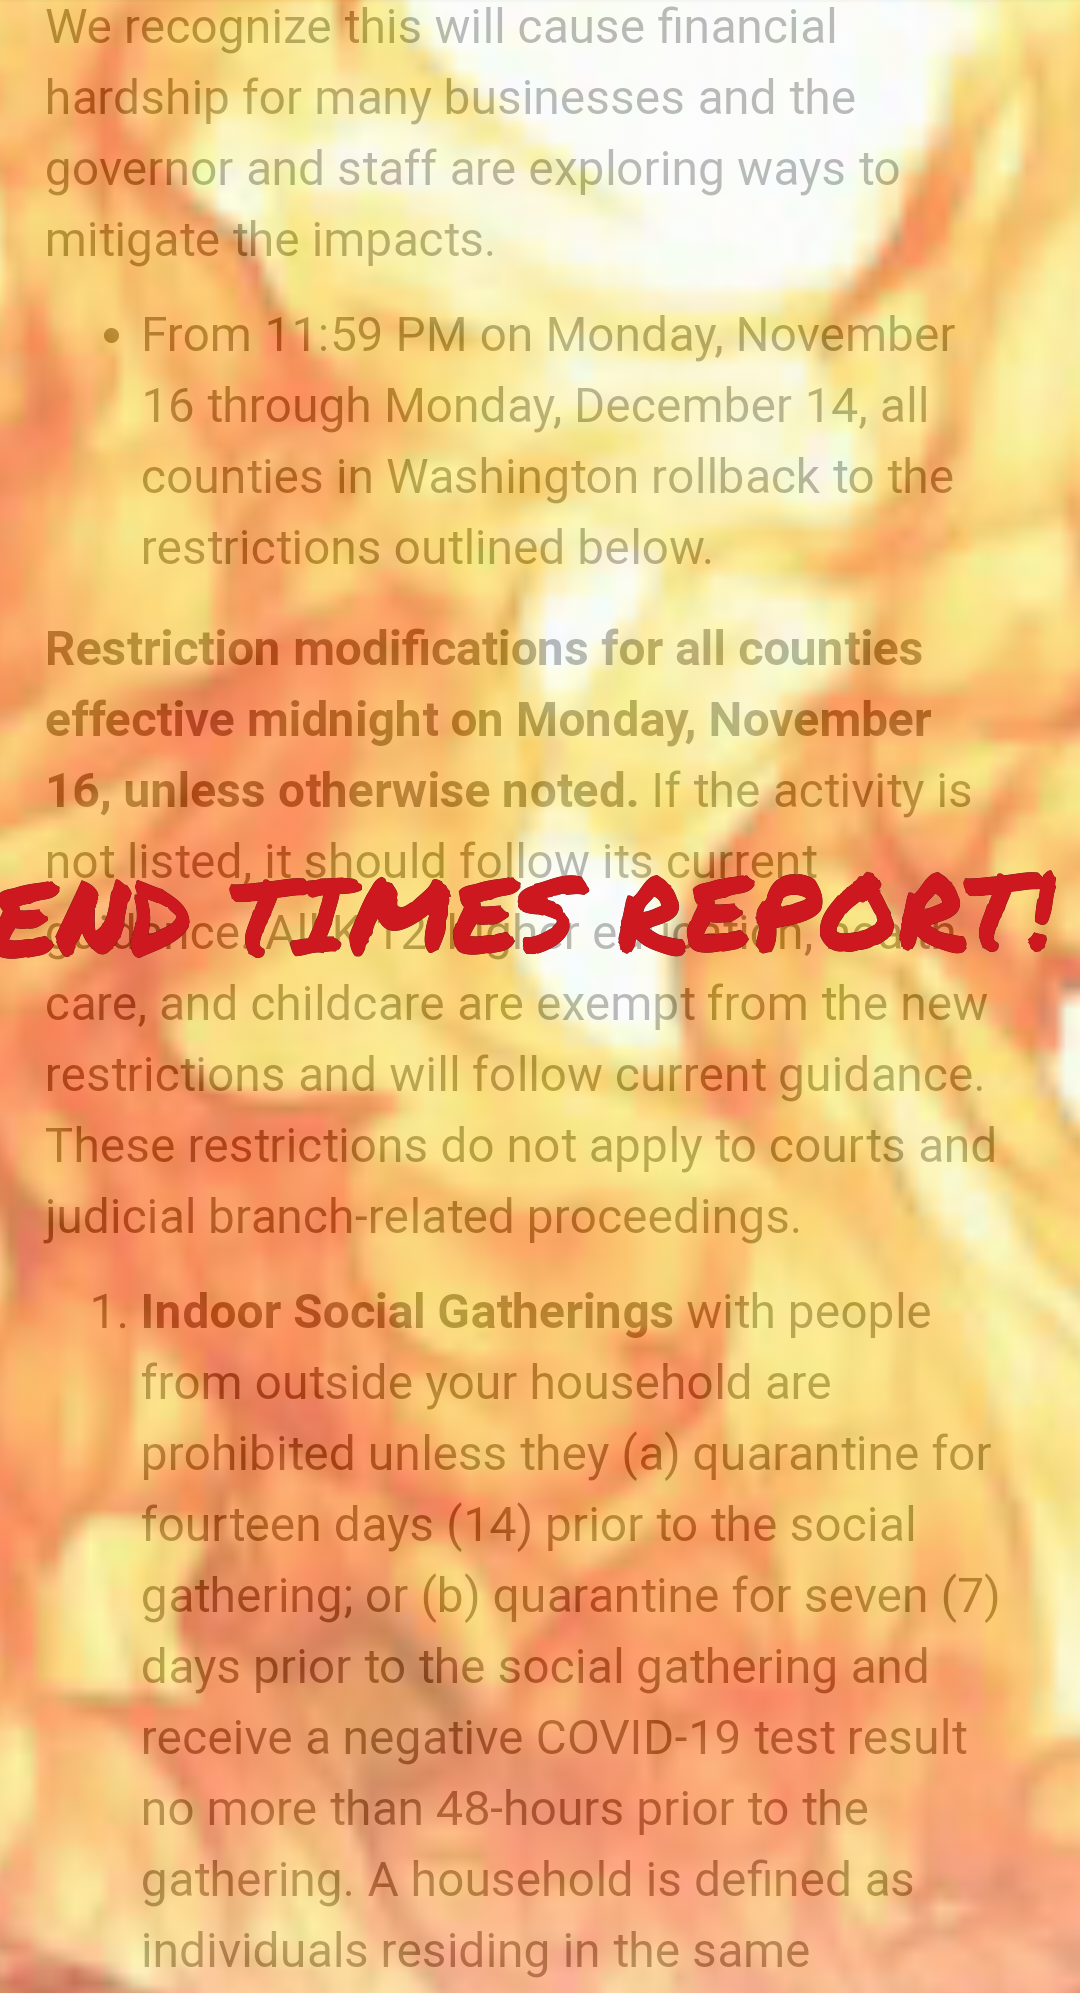 End Times Report: Let Em Burn